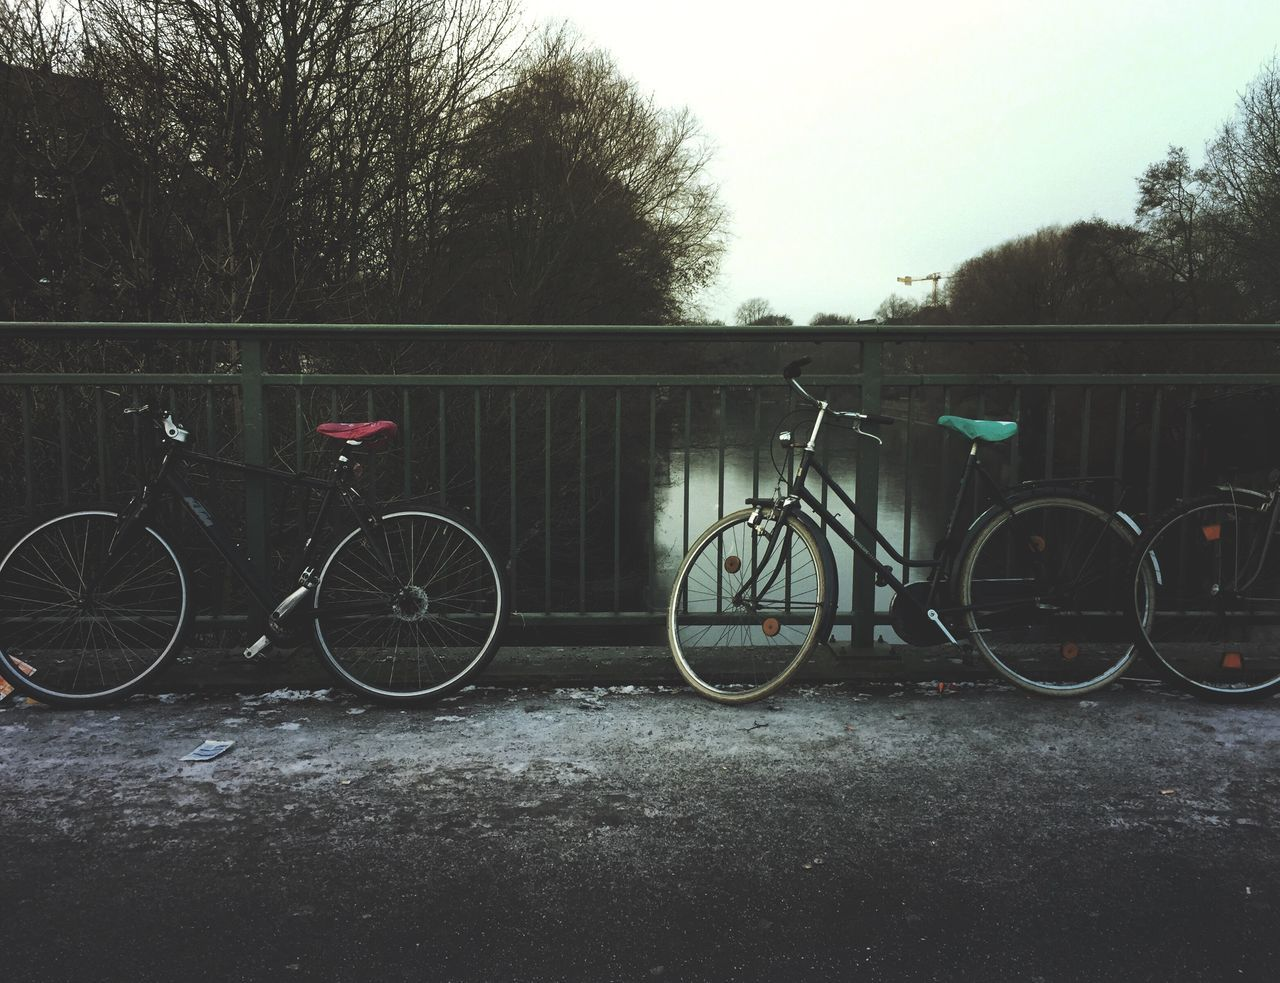 Bicycle No People Melancholic Landscapes Bicycles Canal Water Bridge Wintertime Cold Winter ❄⛄ Cold Weather Cold Days Morning Melancholic Cityscapes Melancholy